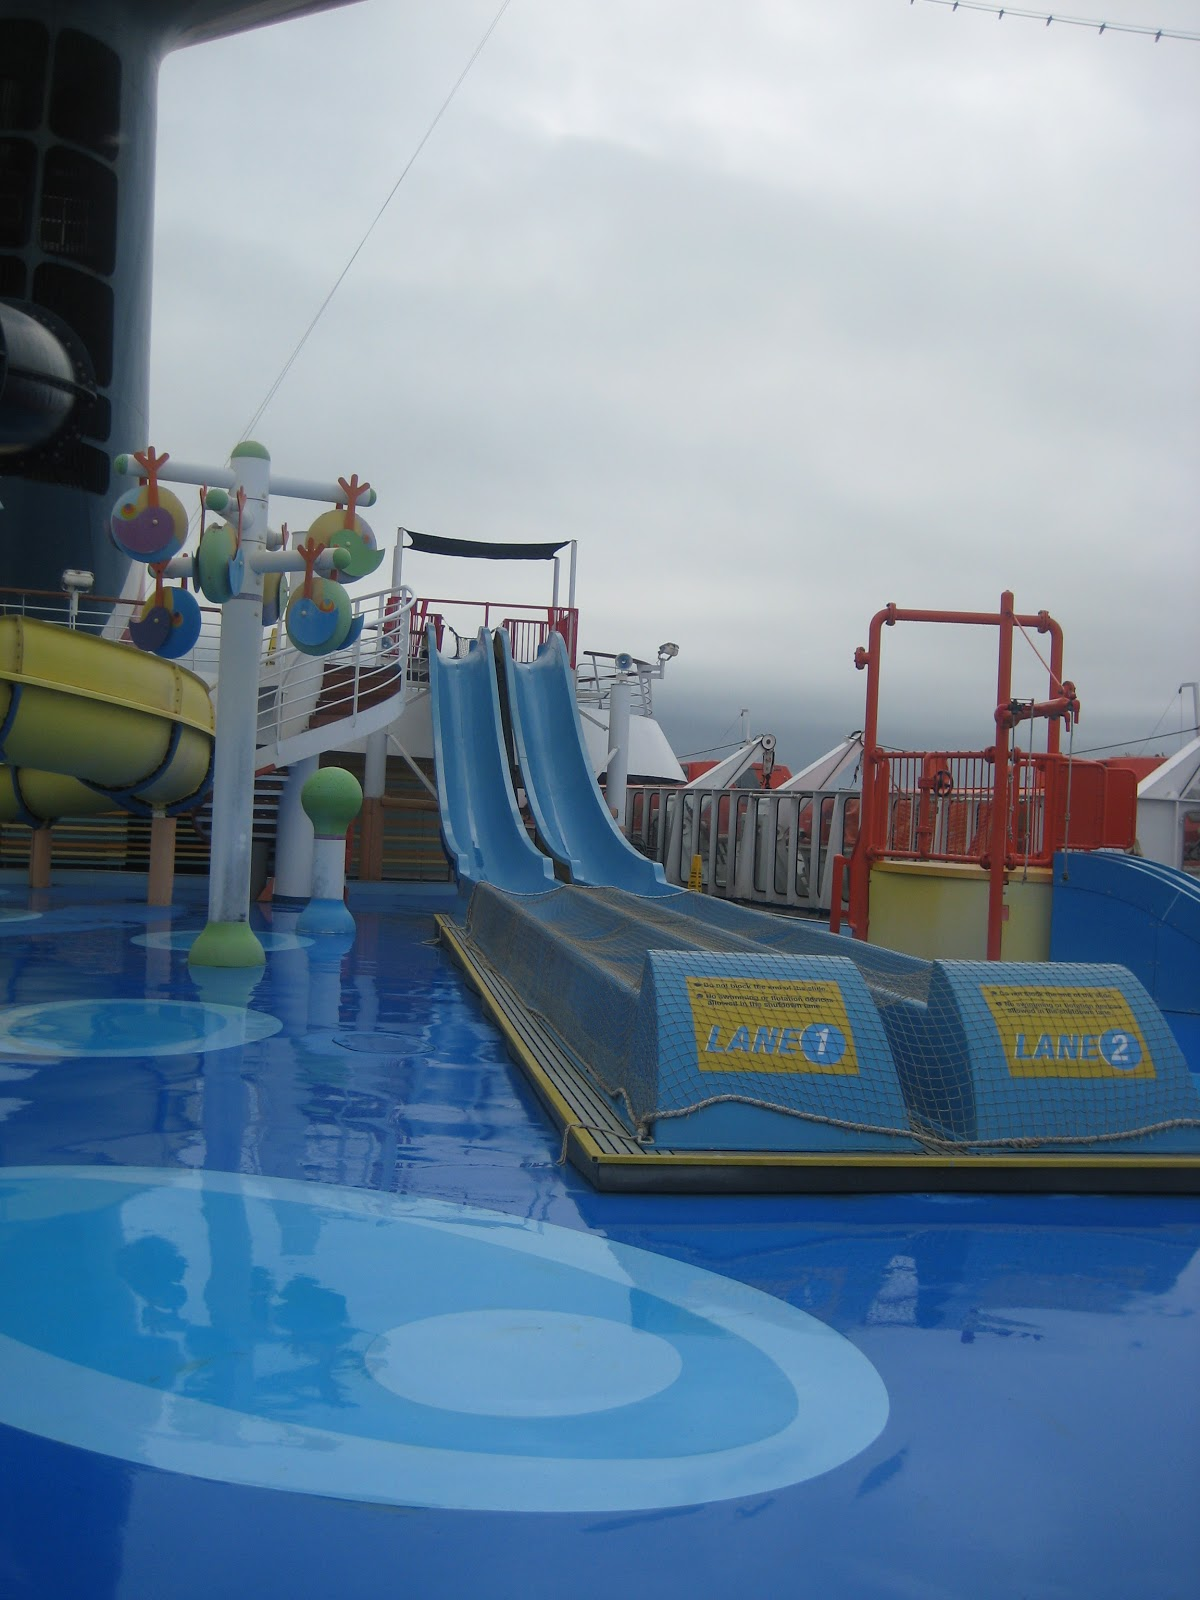 Cruise we do our share of going for a dip and a slide in the pool